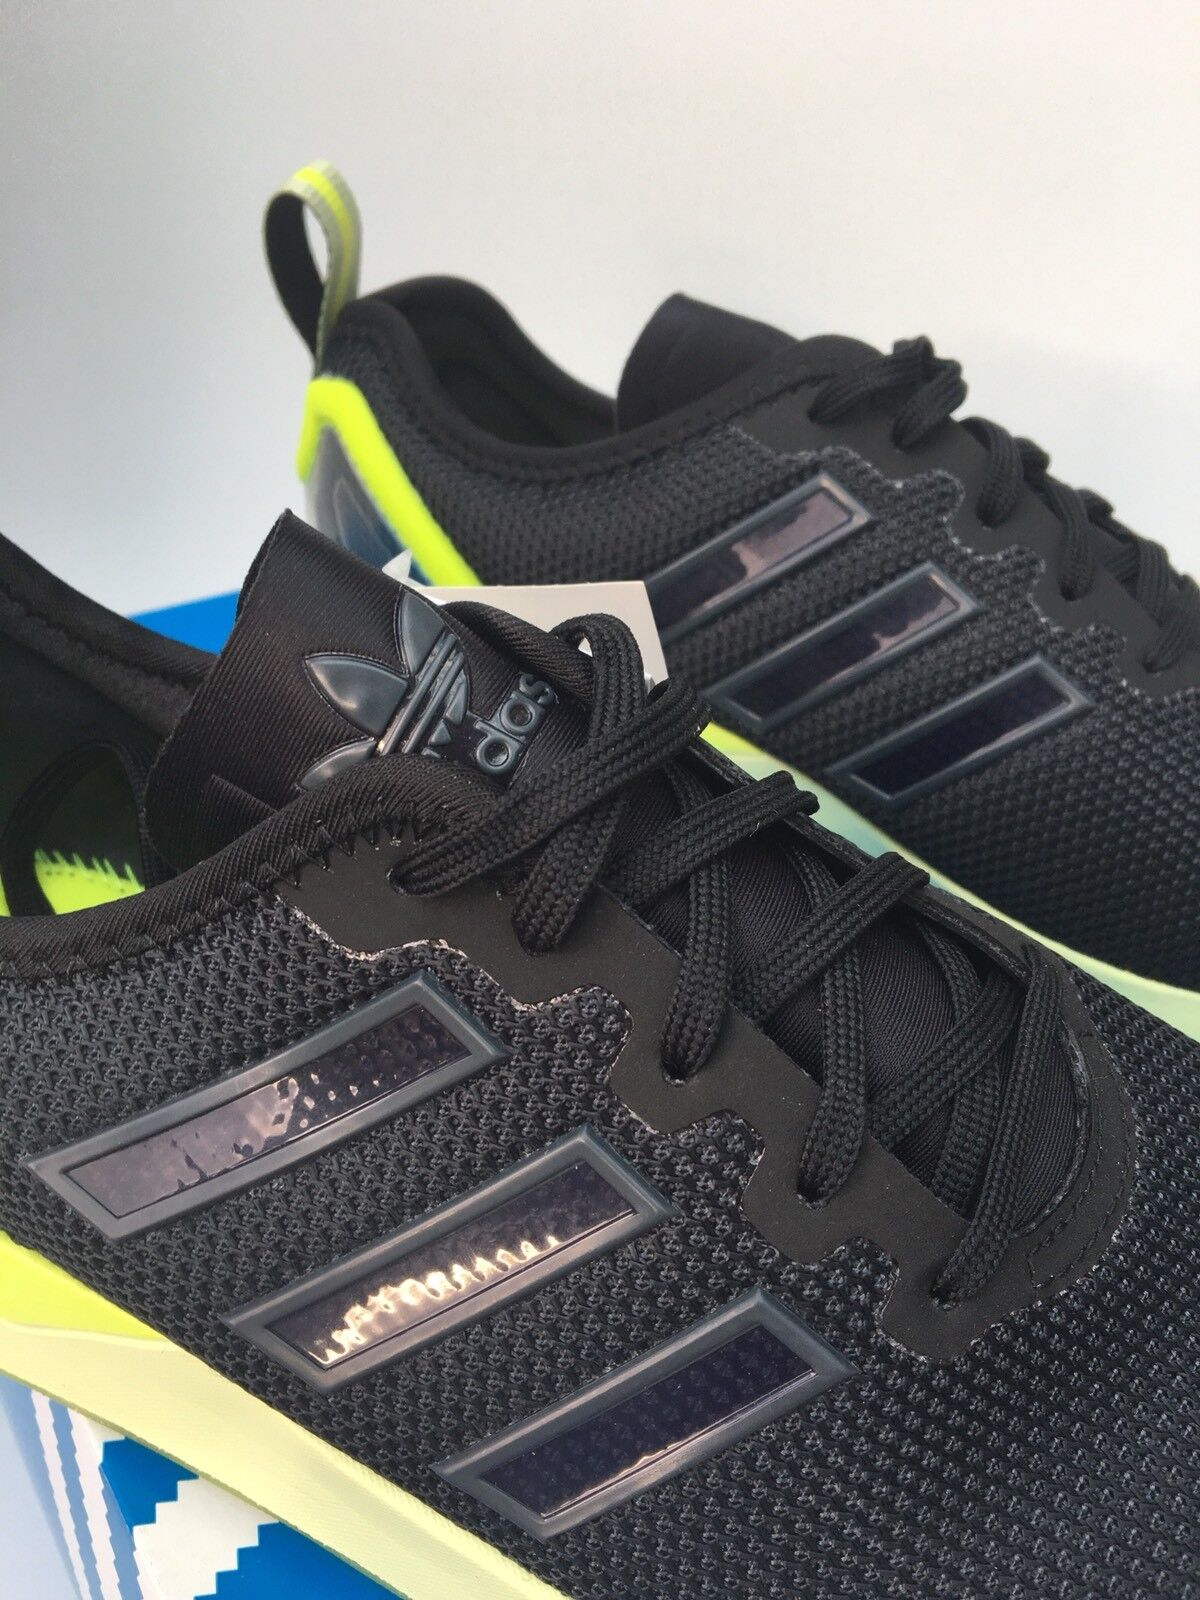 adidas ZX ADV Flux ADV ZX Trainers Sneakers AQ49068.5 Brand New In Box Noir Halo 286d10